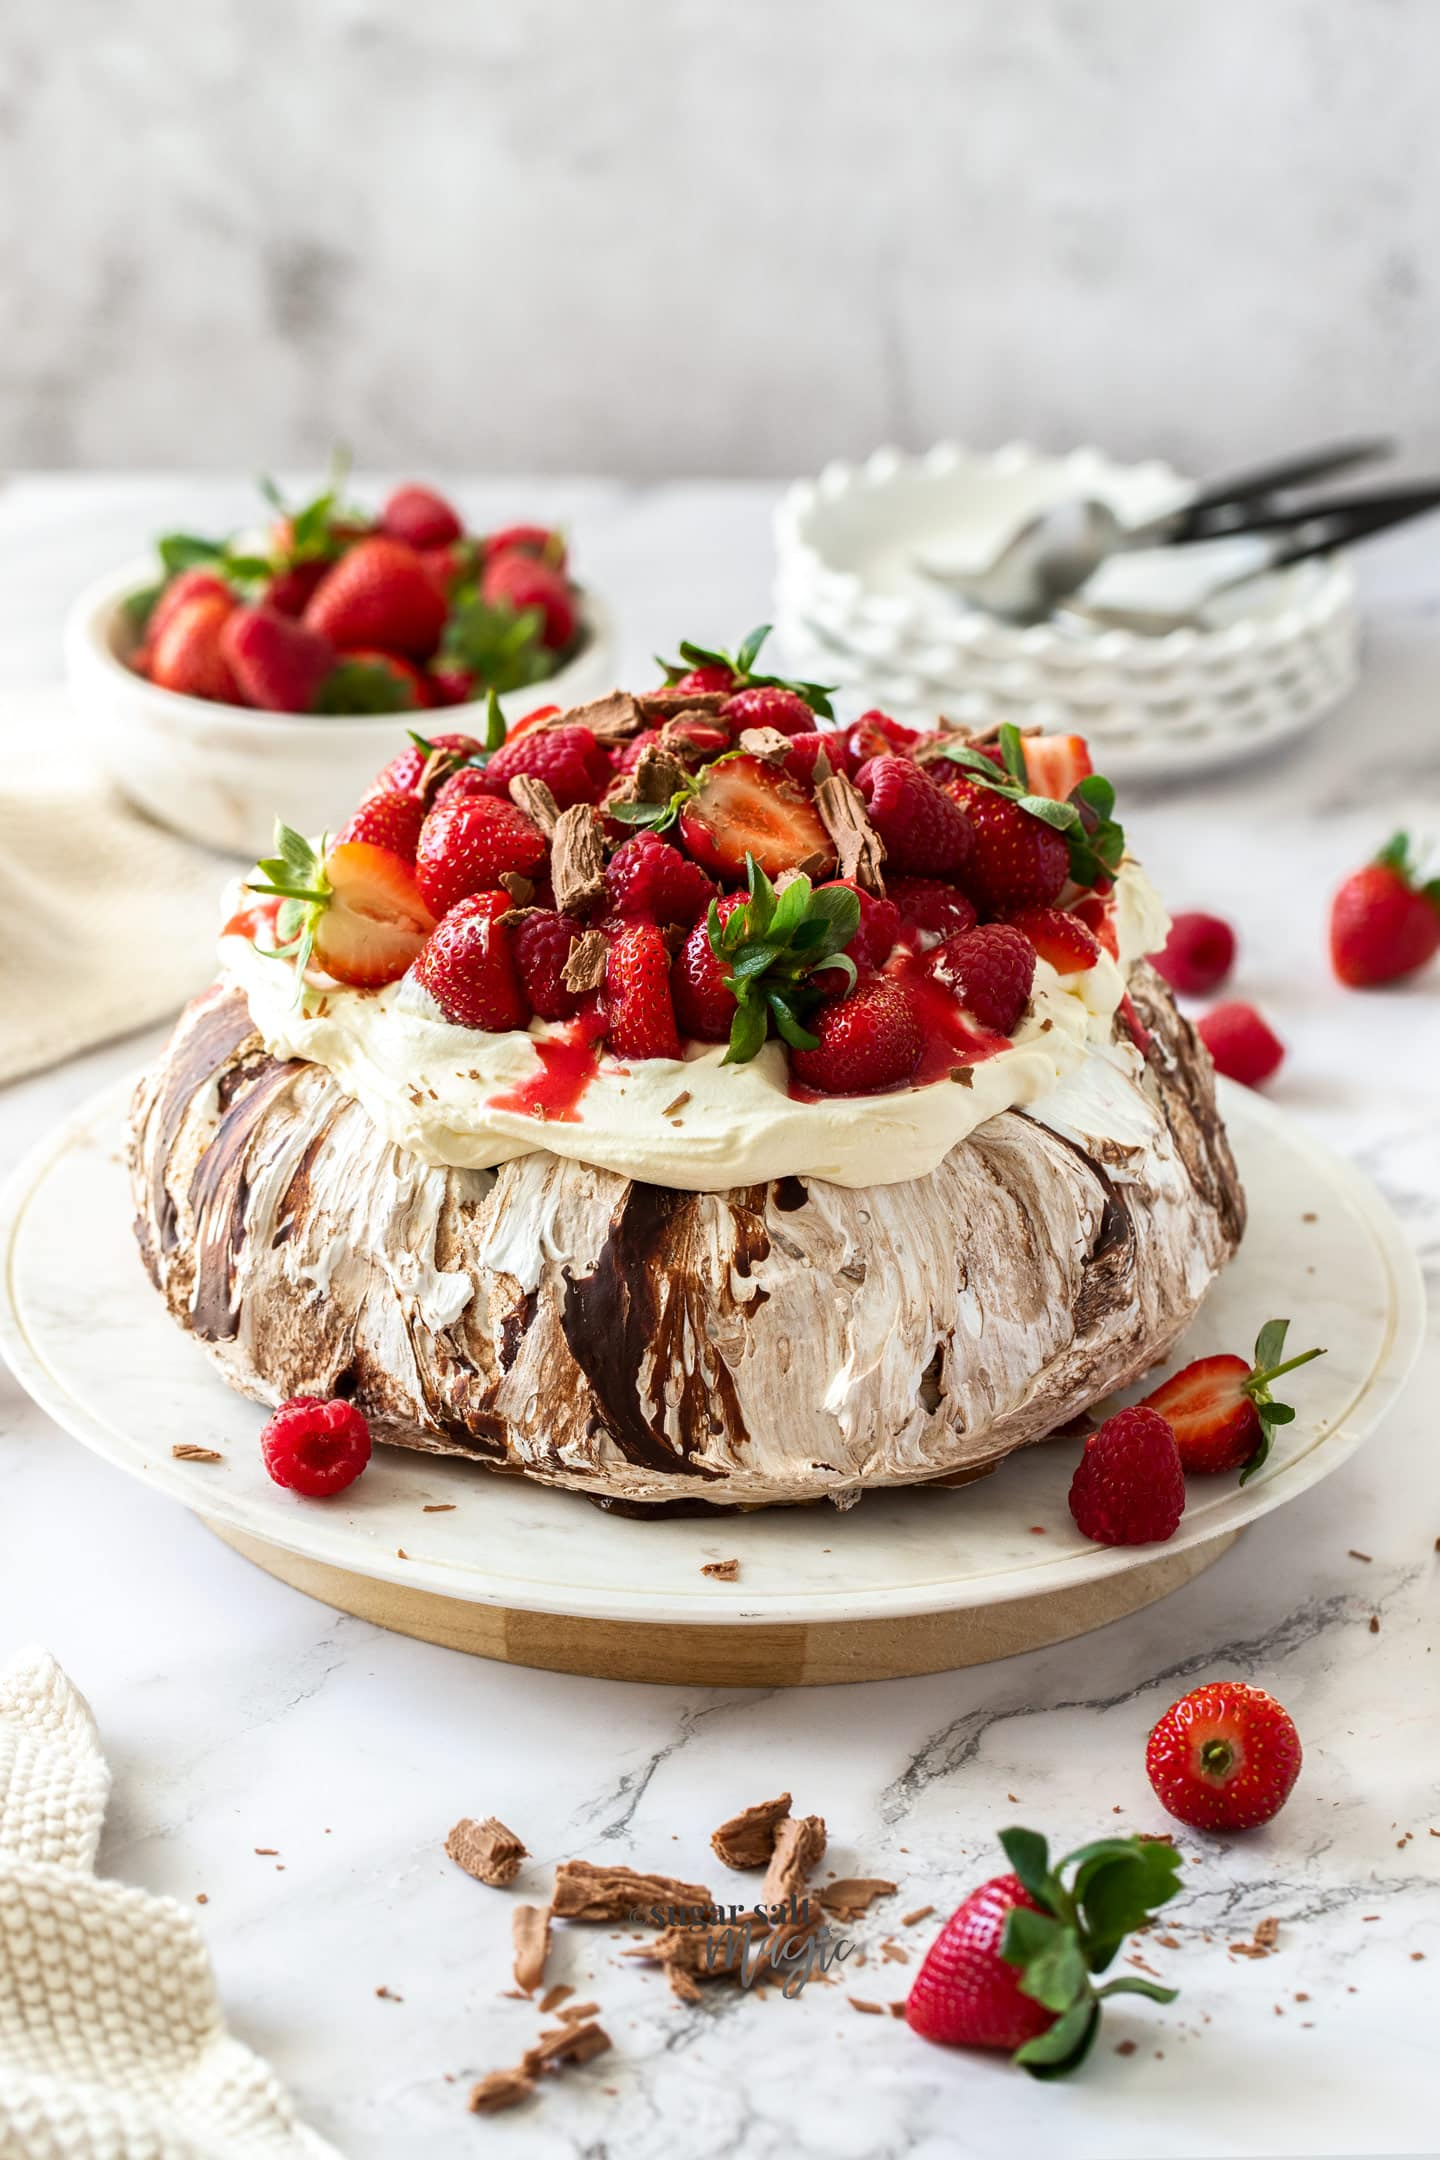 A chocolate pavlova topped with cream and berries on a white cake plate